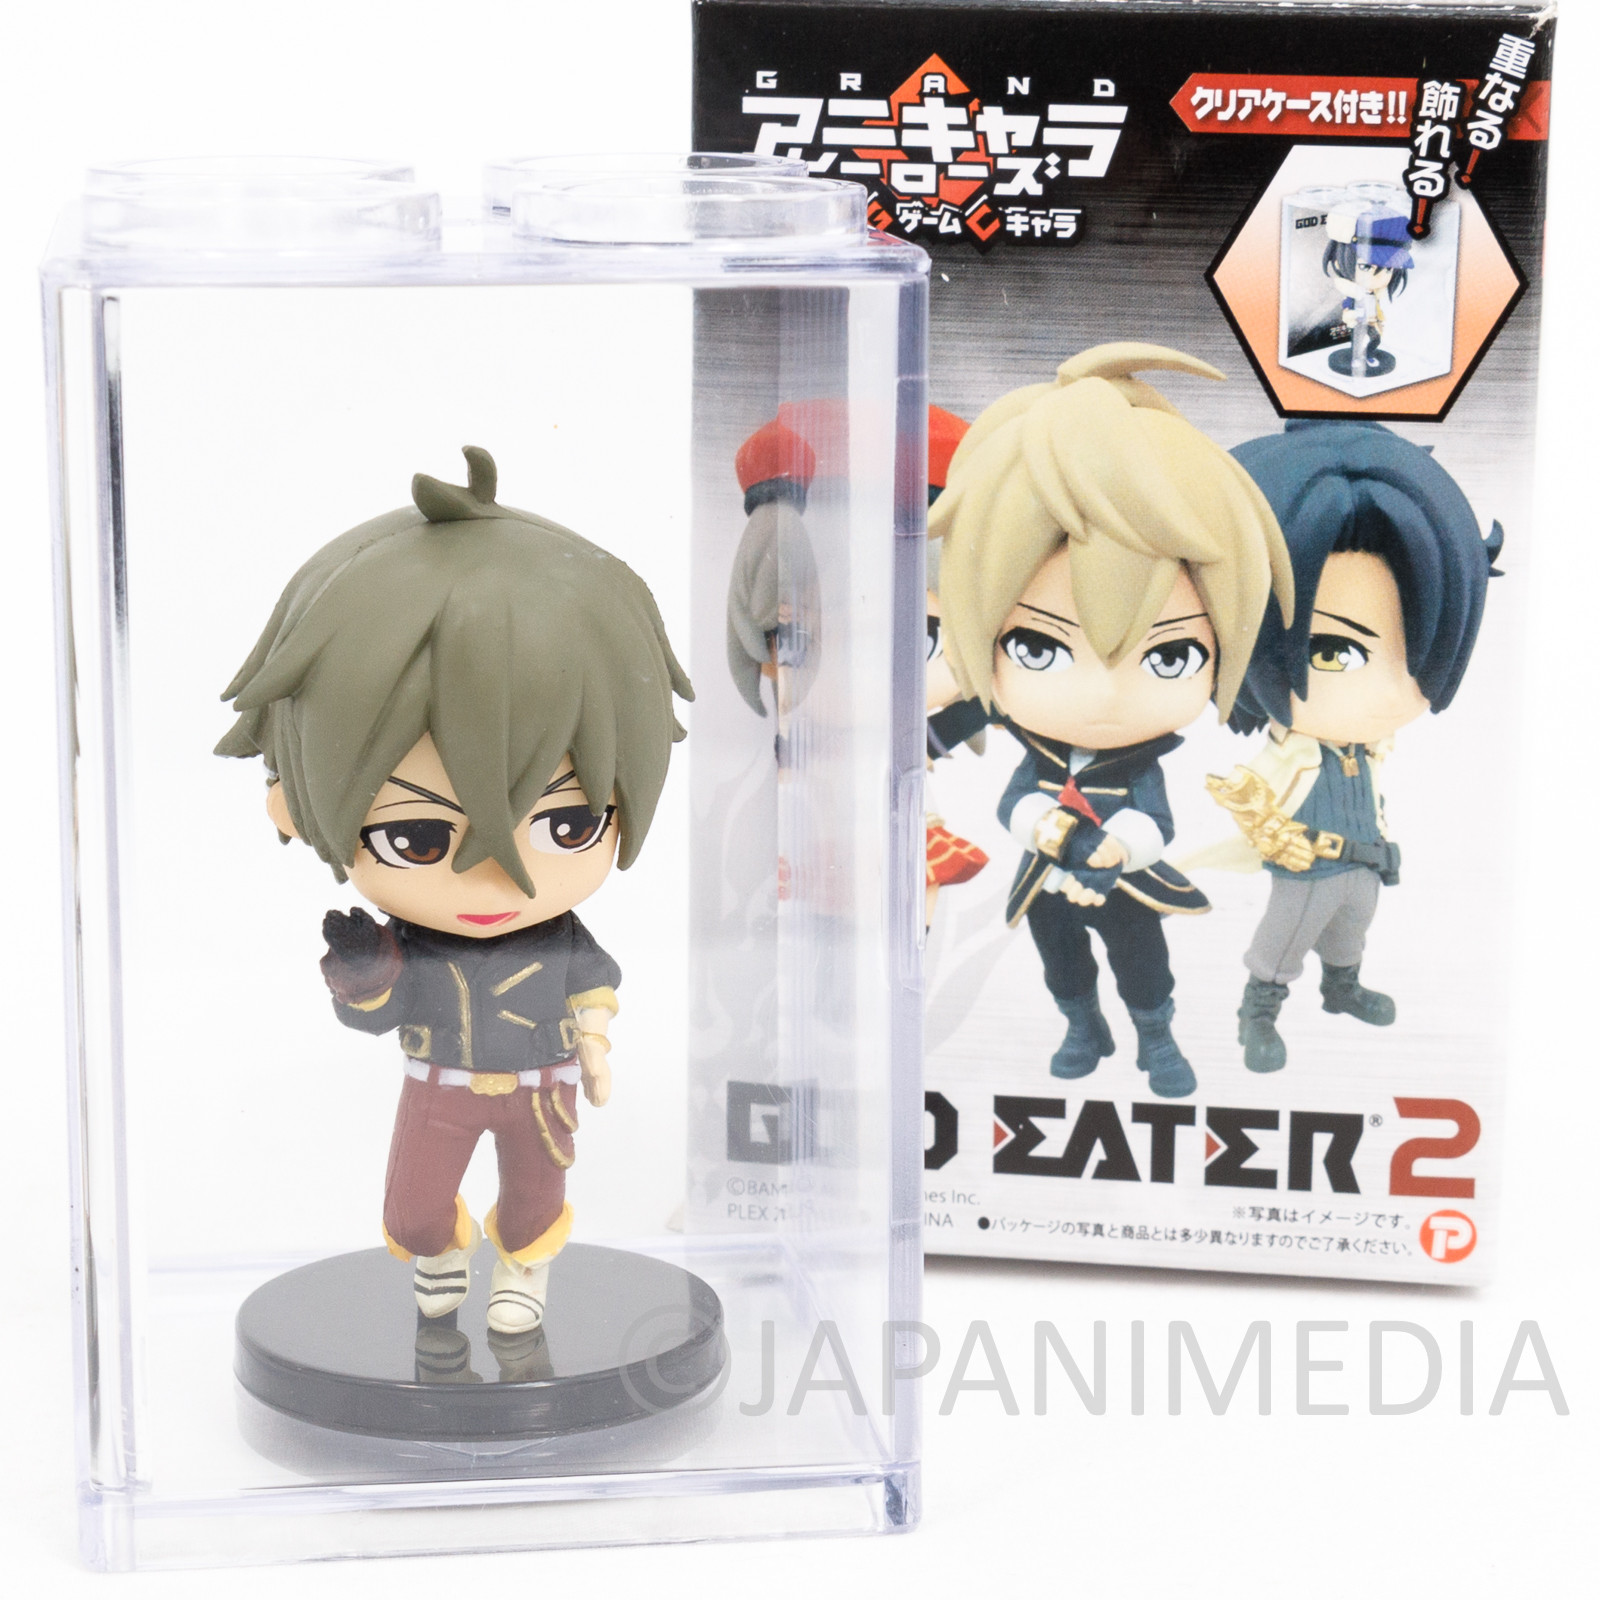 God Eater 2 Rage Burst Haruomi Makabe Figure in Clear Case JAPAN GAME PSP